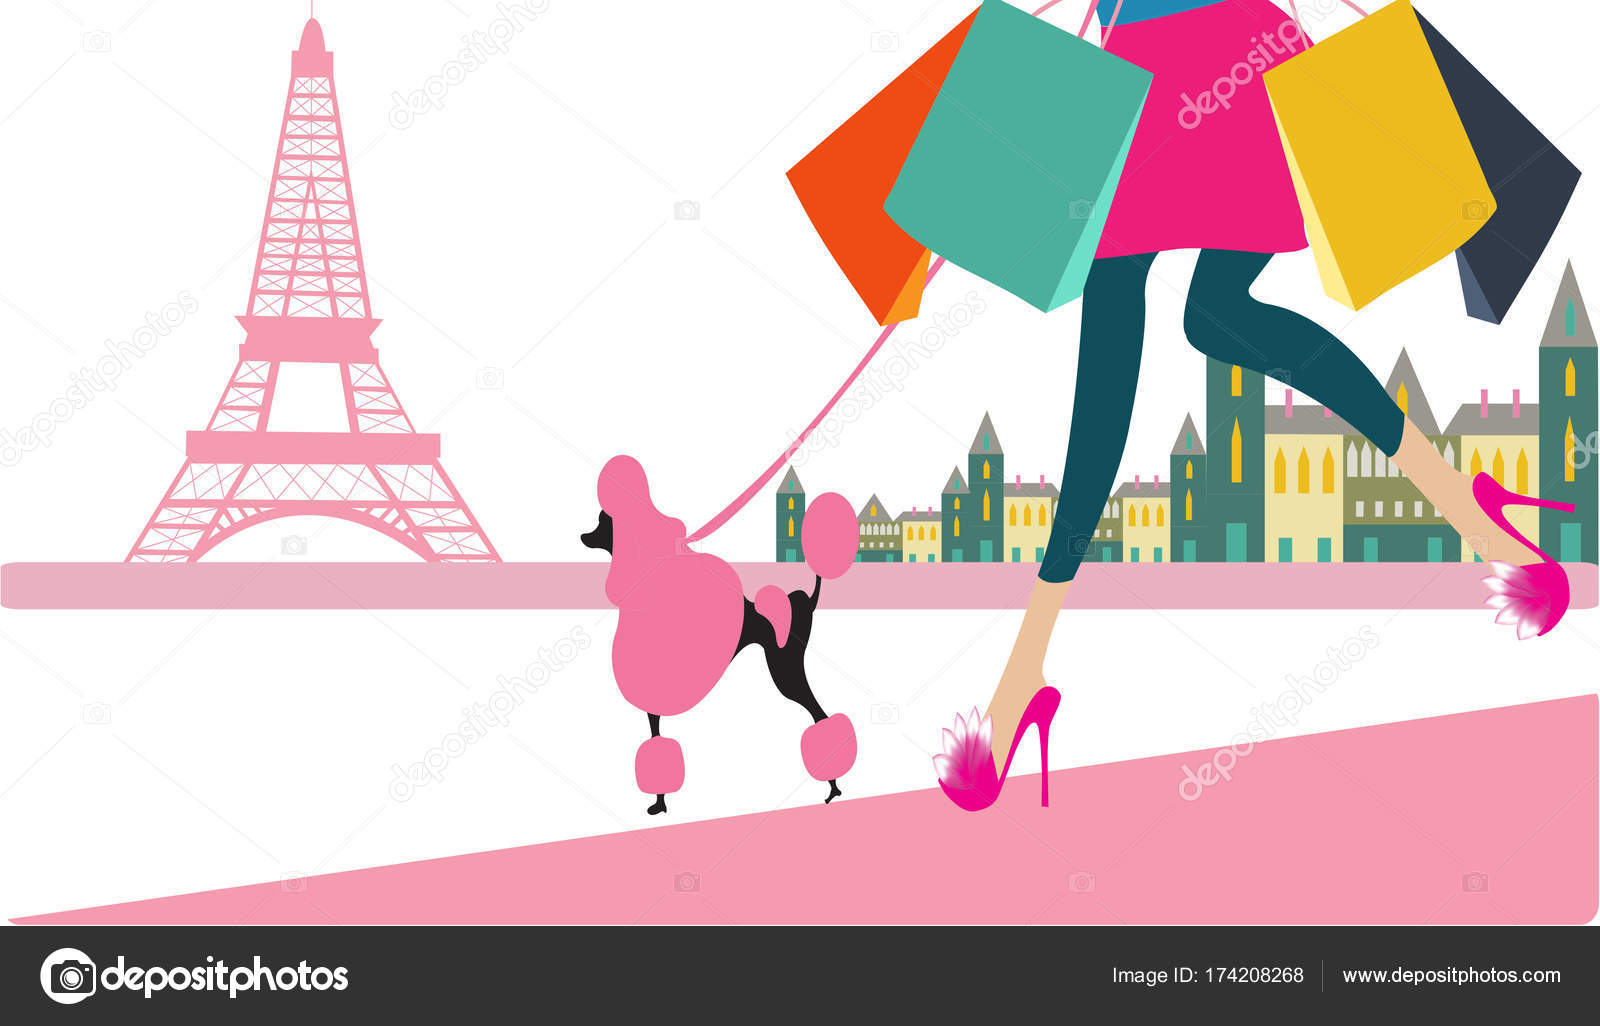 Shoppen In Parijs Meisje Gaan Shoppen In Parijs Stockfoto Createsima 174208268